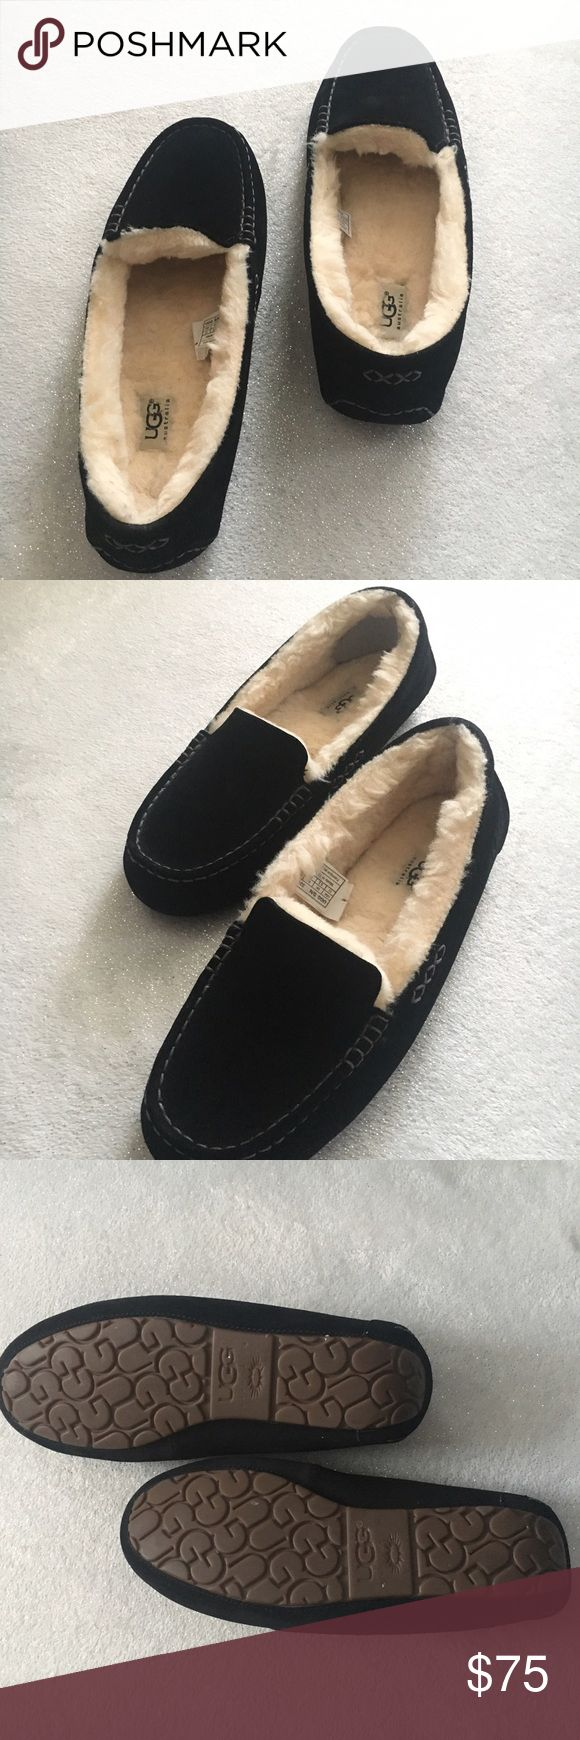 Men's UGG  slippers The right side slipper has a small stain/spot on it but not noticeable unless looking for it, other than that, they are in perfect condition. Please see last picture. UGG Shoes Slippers